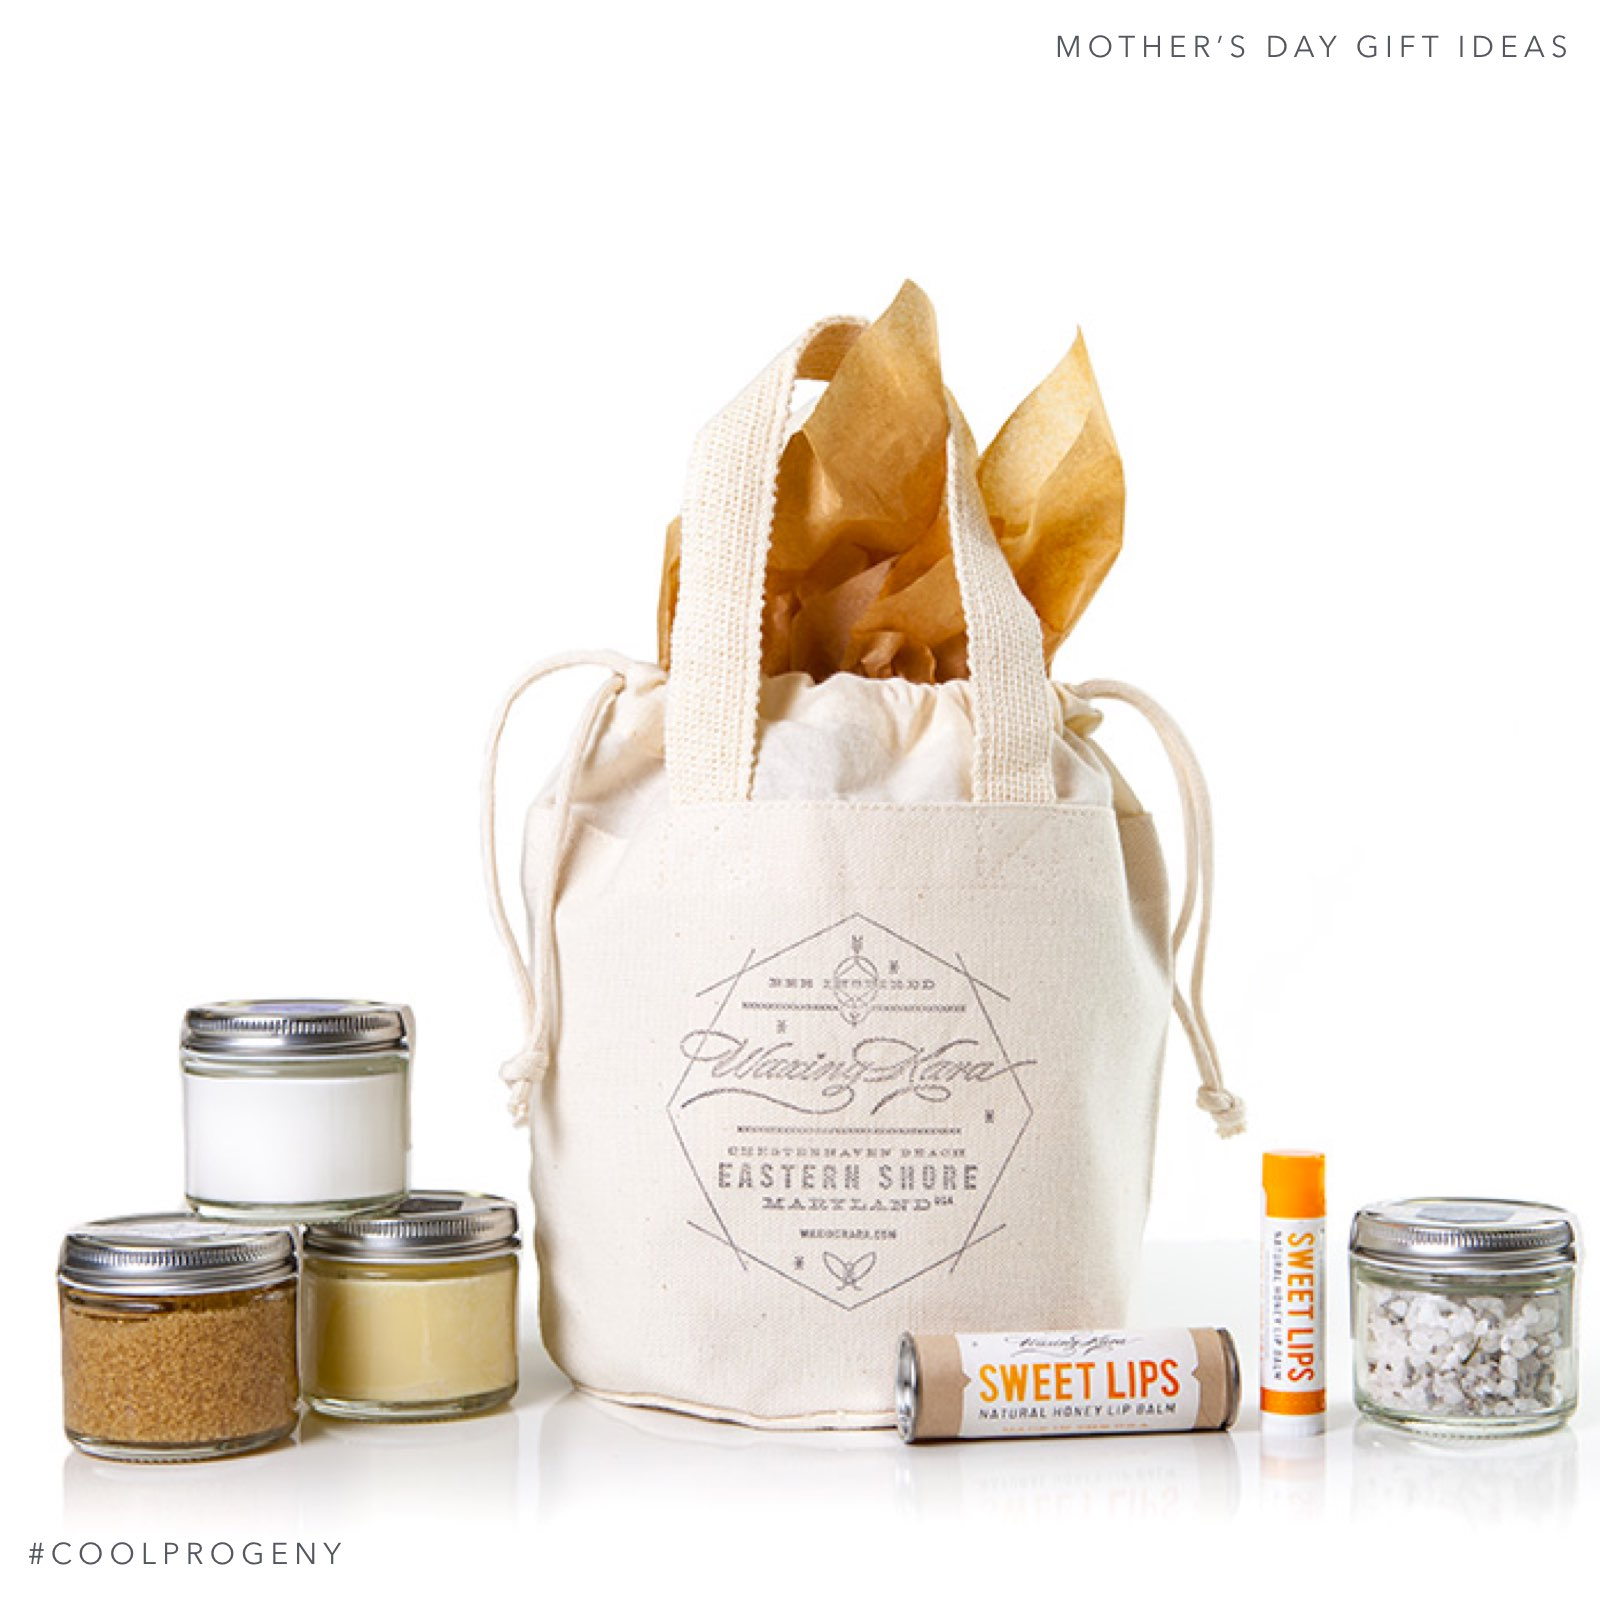 Mother's Day Gift Idea - (cool) progeny - Waxing Kara Spa Gift Set